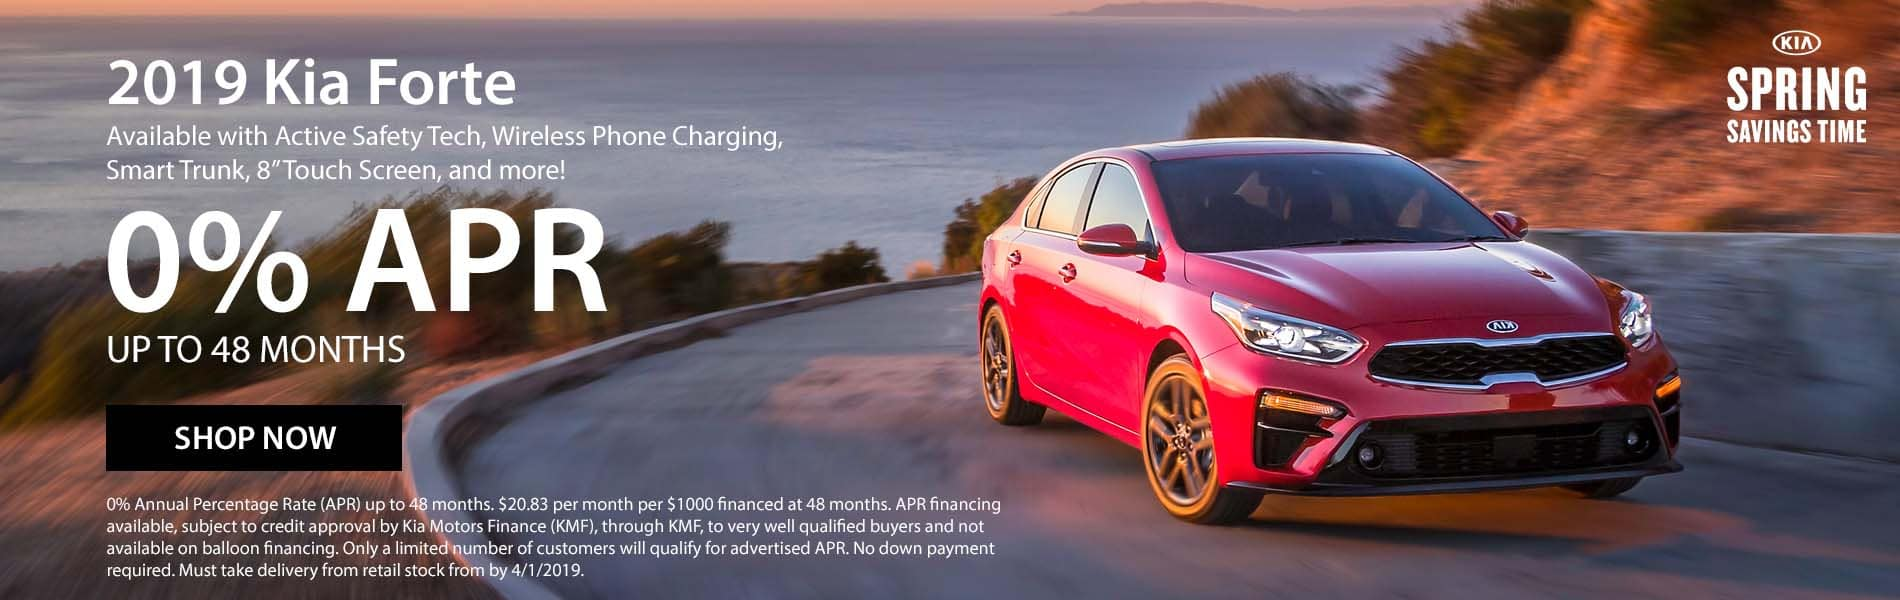 Lease a 2019 Kia Forte LXS for $99 per month with $2,356 due at signing or get 0% APR up to 48 months